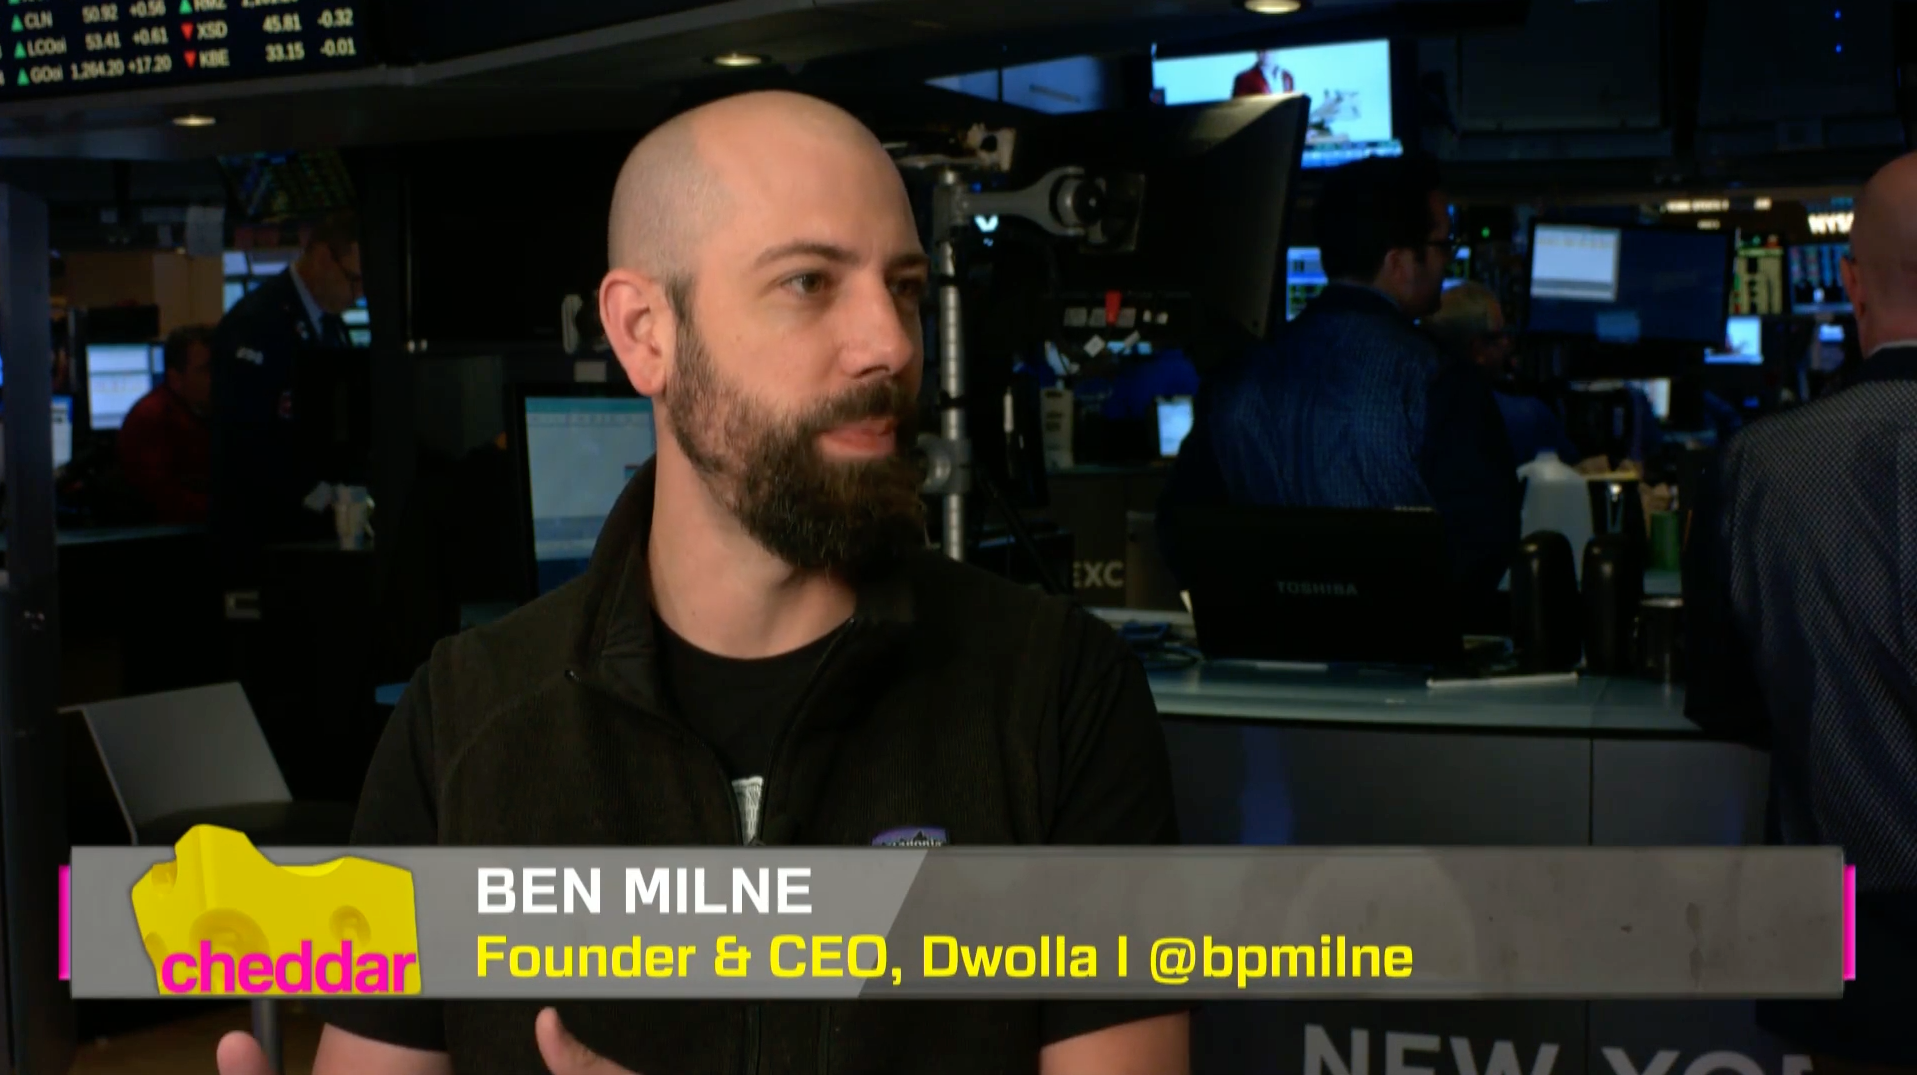 EXCLUSIVE INTERVIEW WITH DWOLLA FOUNDER AND CEO BEN MILNE